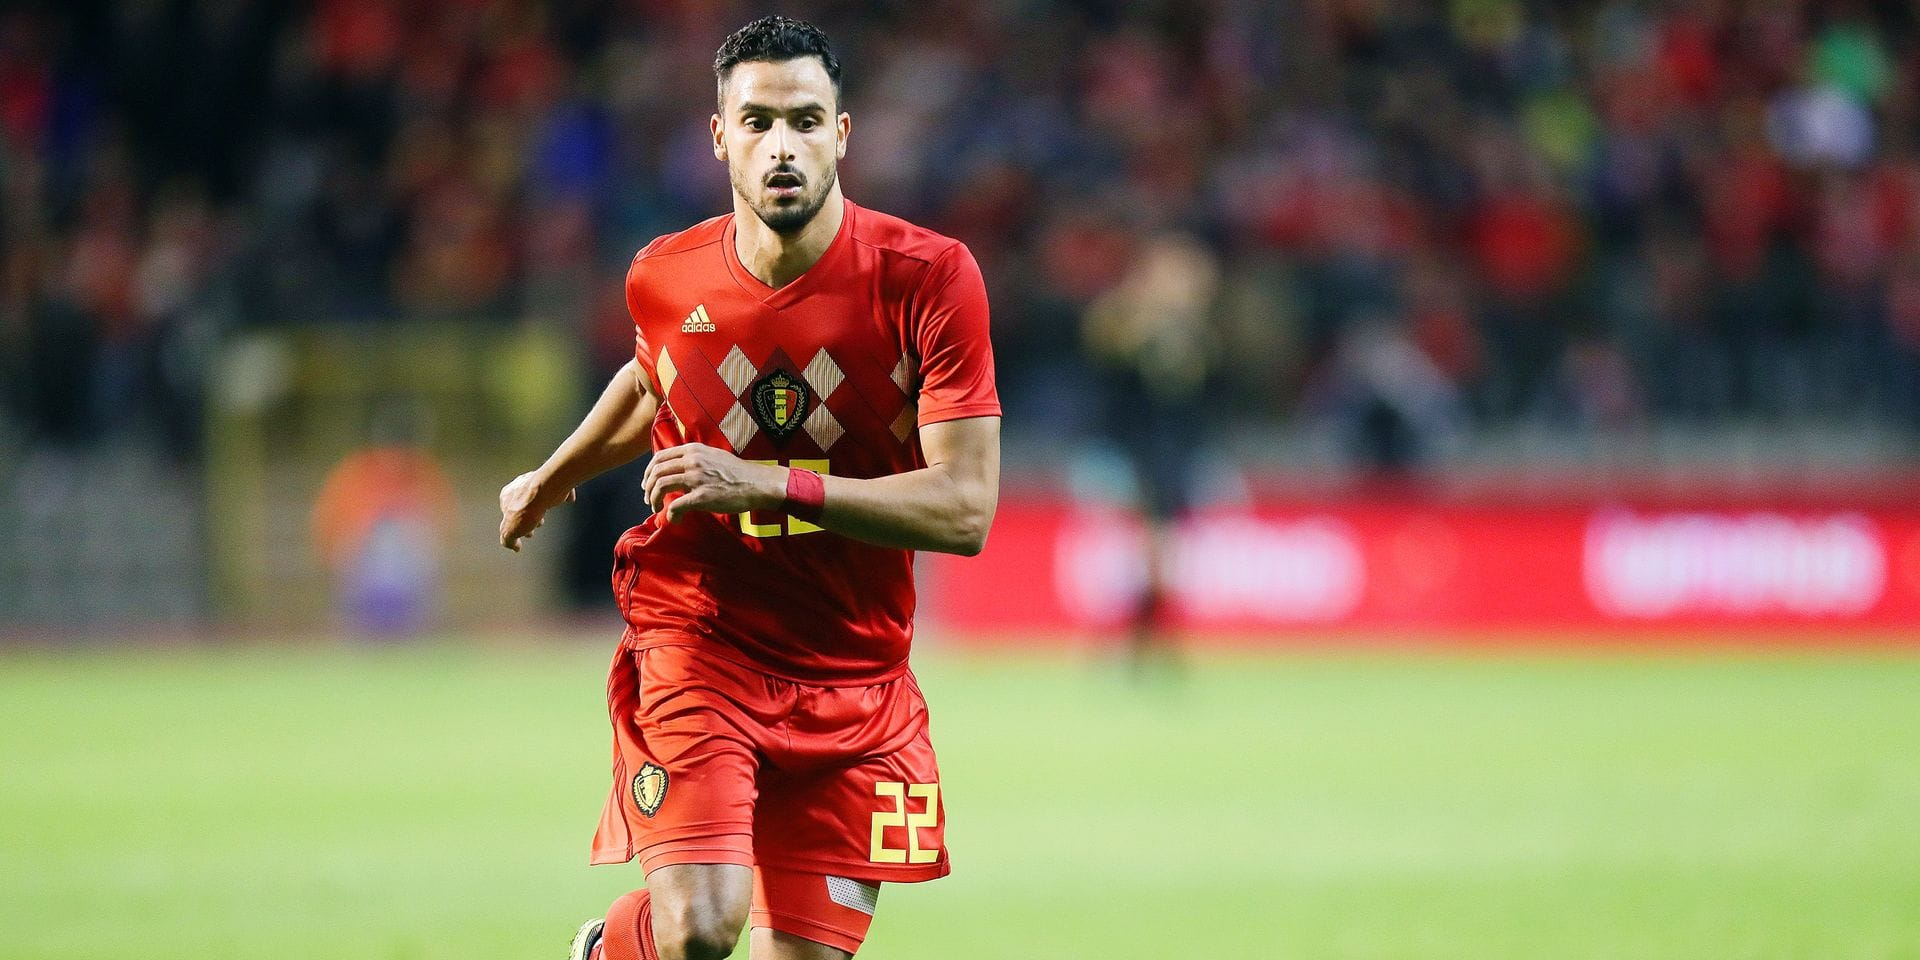 Belgium's Nacer Chadli pictured in action during a friendly soccer game between Belgian national team Red Devils and Mexico, Saturday 11 November 2017, in Brussels. BELGA PHOTO VIRGINIE LEFOUR